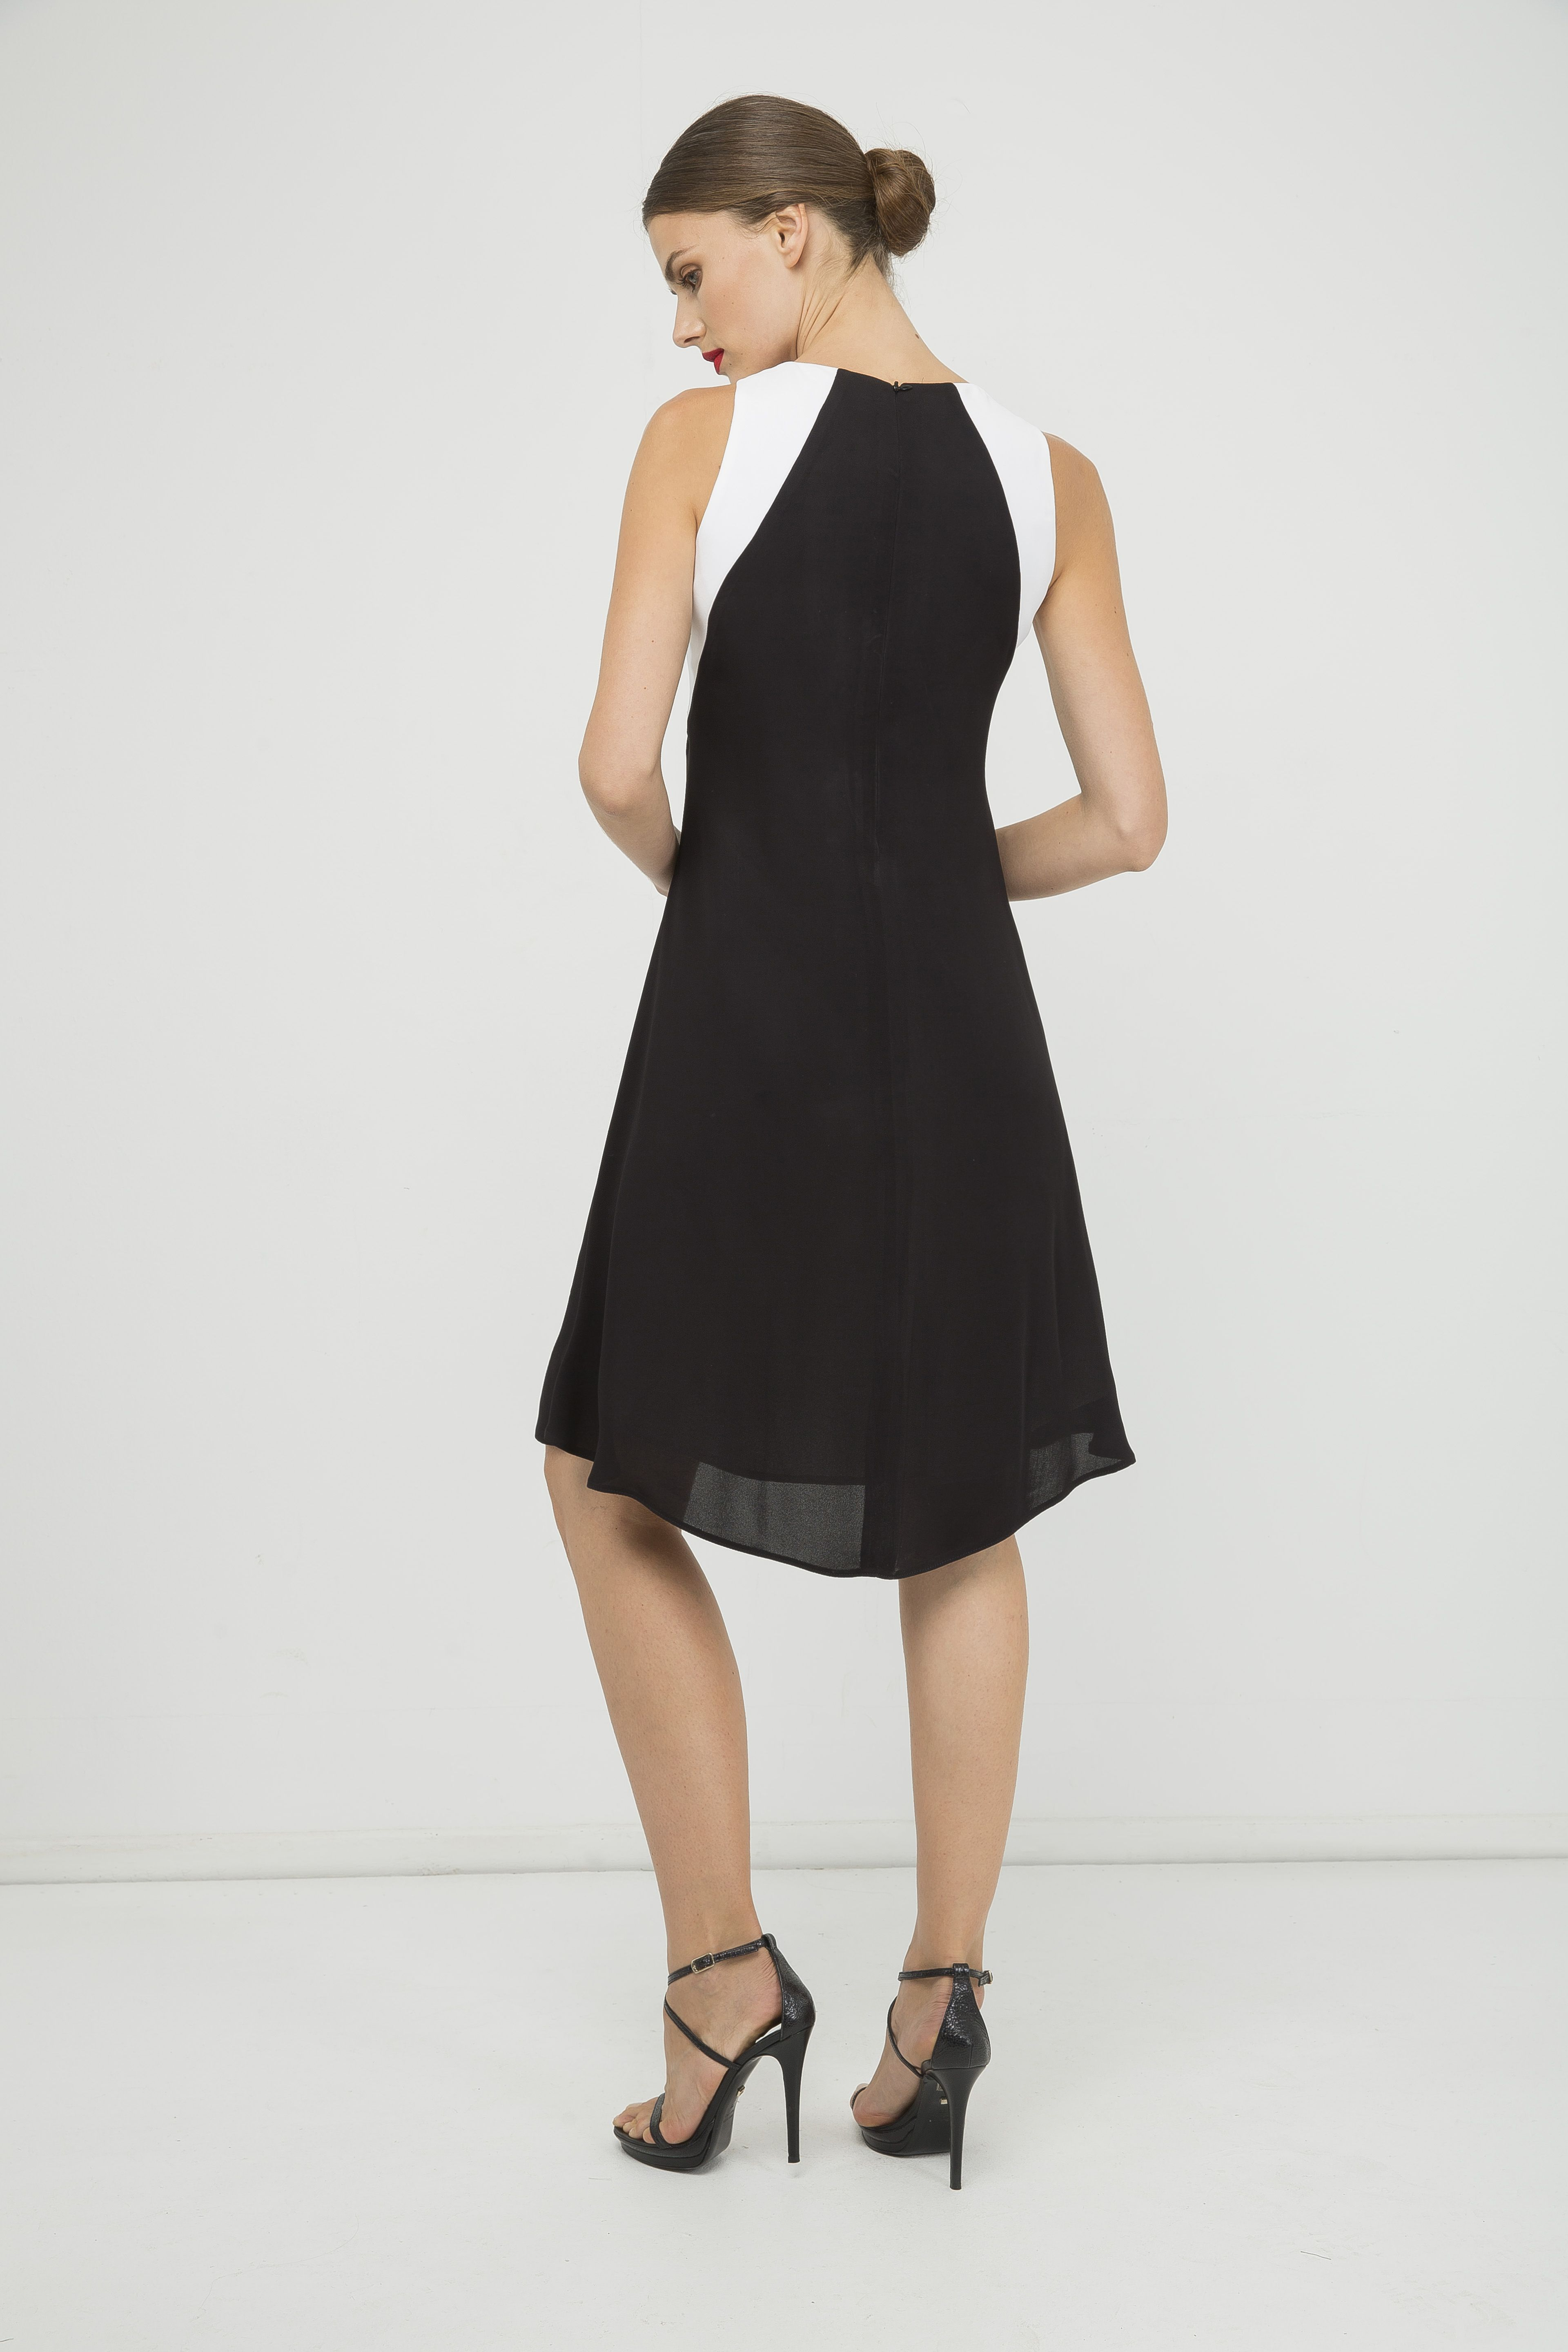 Sleeveless A Line Black Dress